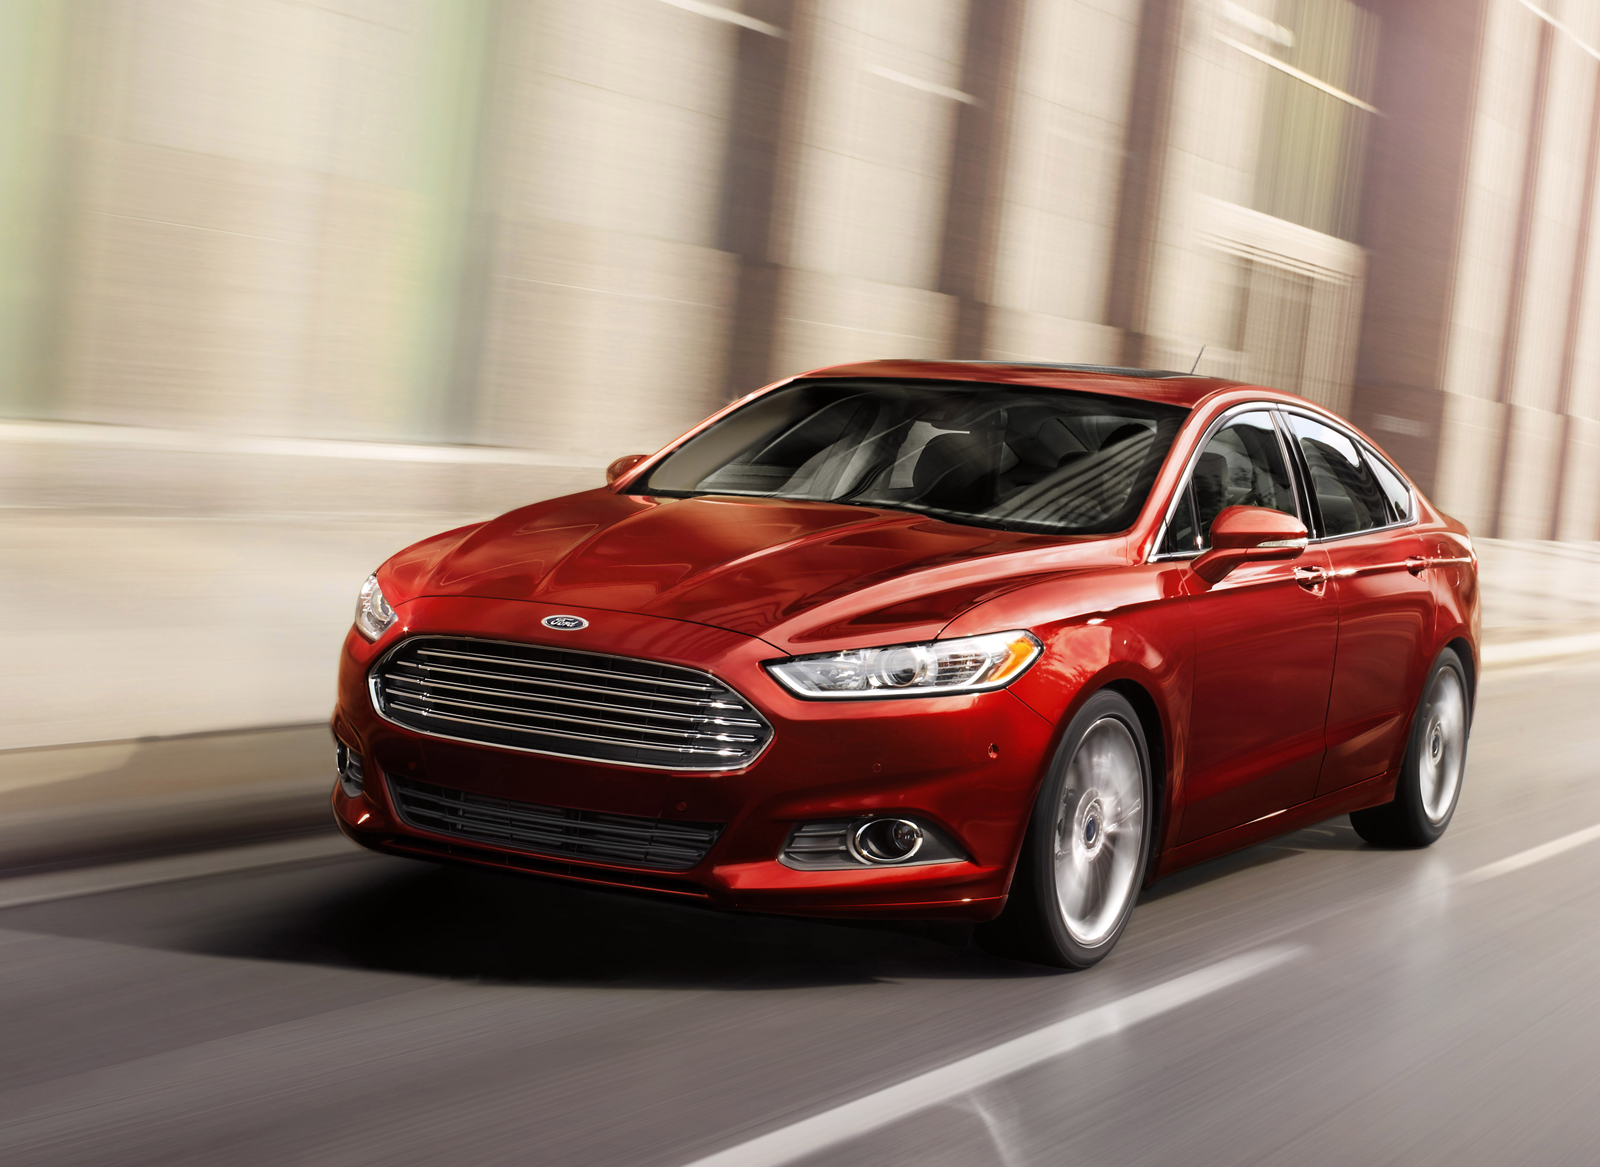 The true winner in this class is the American car buyer who gets to pick from a deep roster of strong products from most manufacturers. This year the Ford ... & 10 top American cars you can buy - Consumer Reports markmcfarlin.com